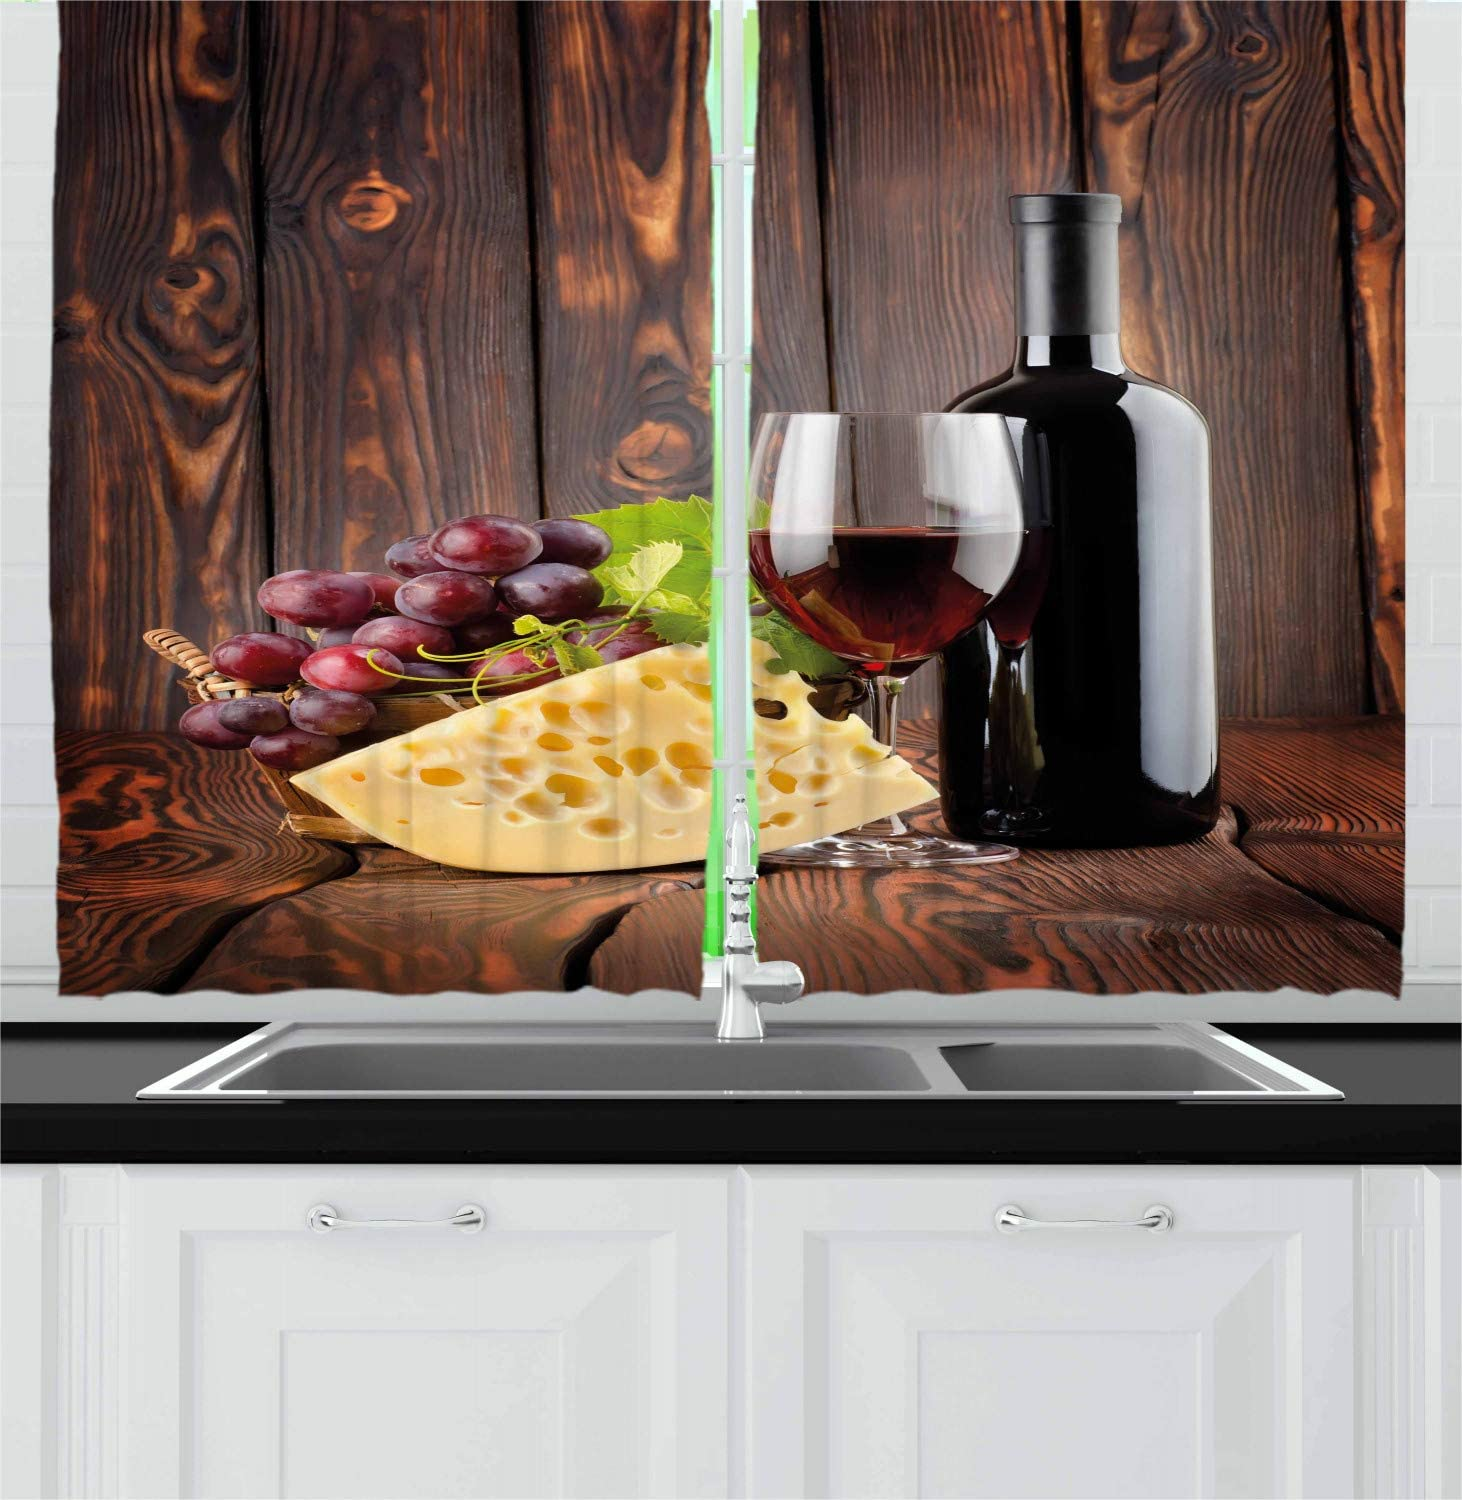 Ambesonne Wine Kitchen Curtains, Red Wine Cabernet Bottle and Glass Cheese and Grapes on Wood Planks Print, Window Drapes 2 Panel Set for Kitchen Cafe Decor, 55